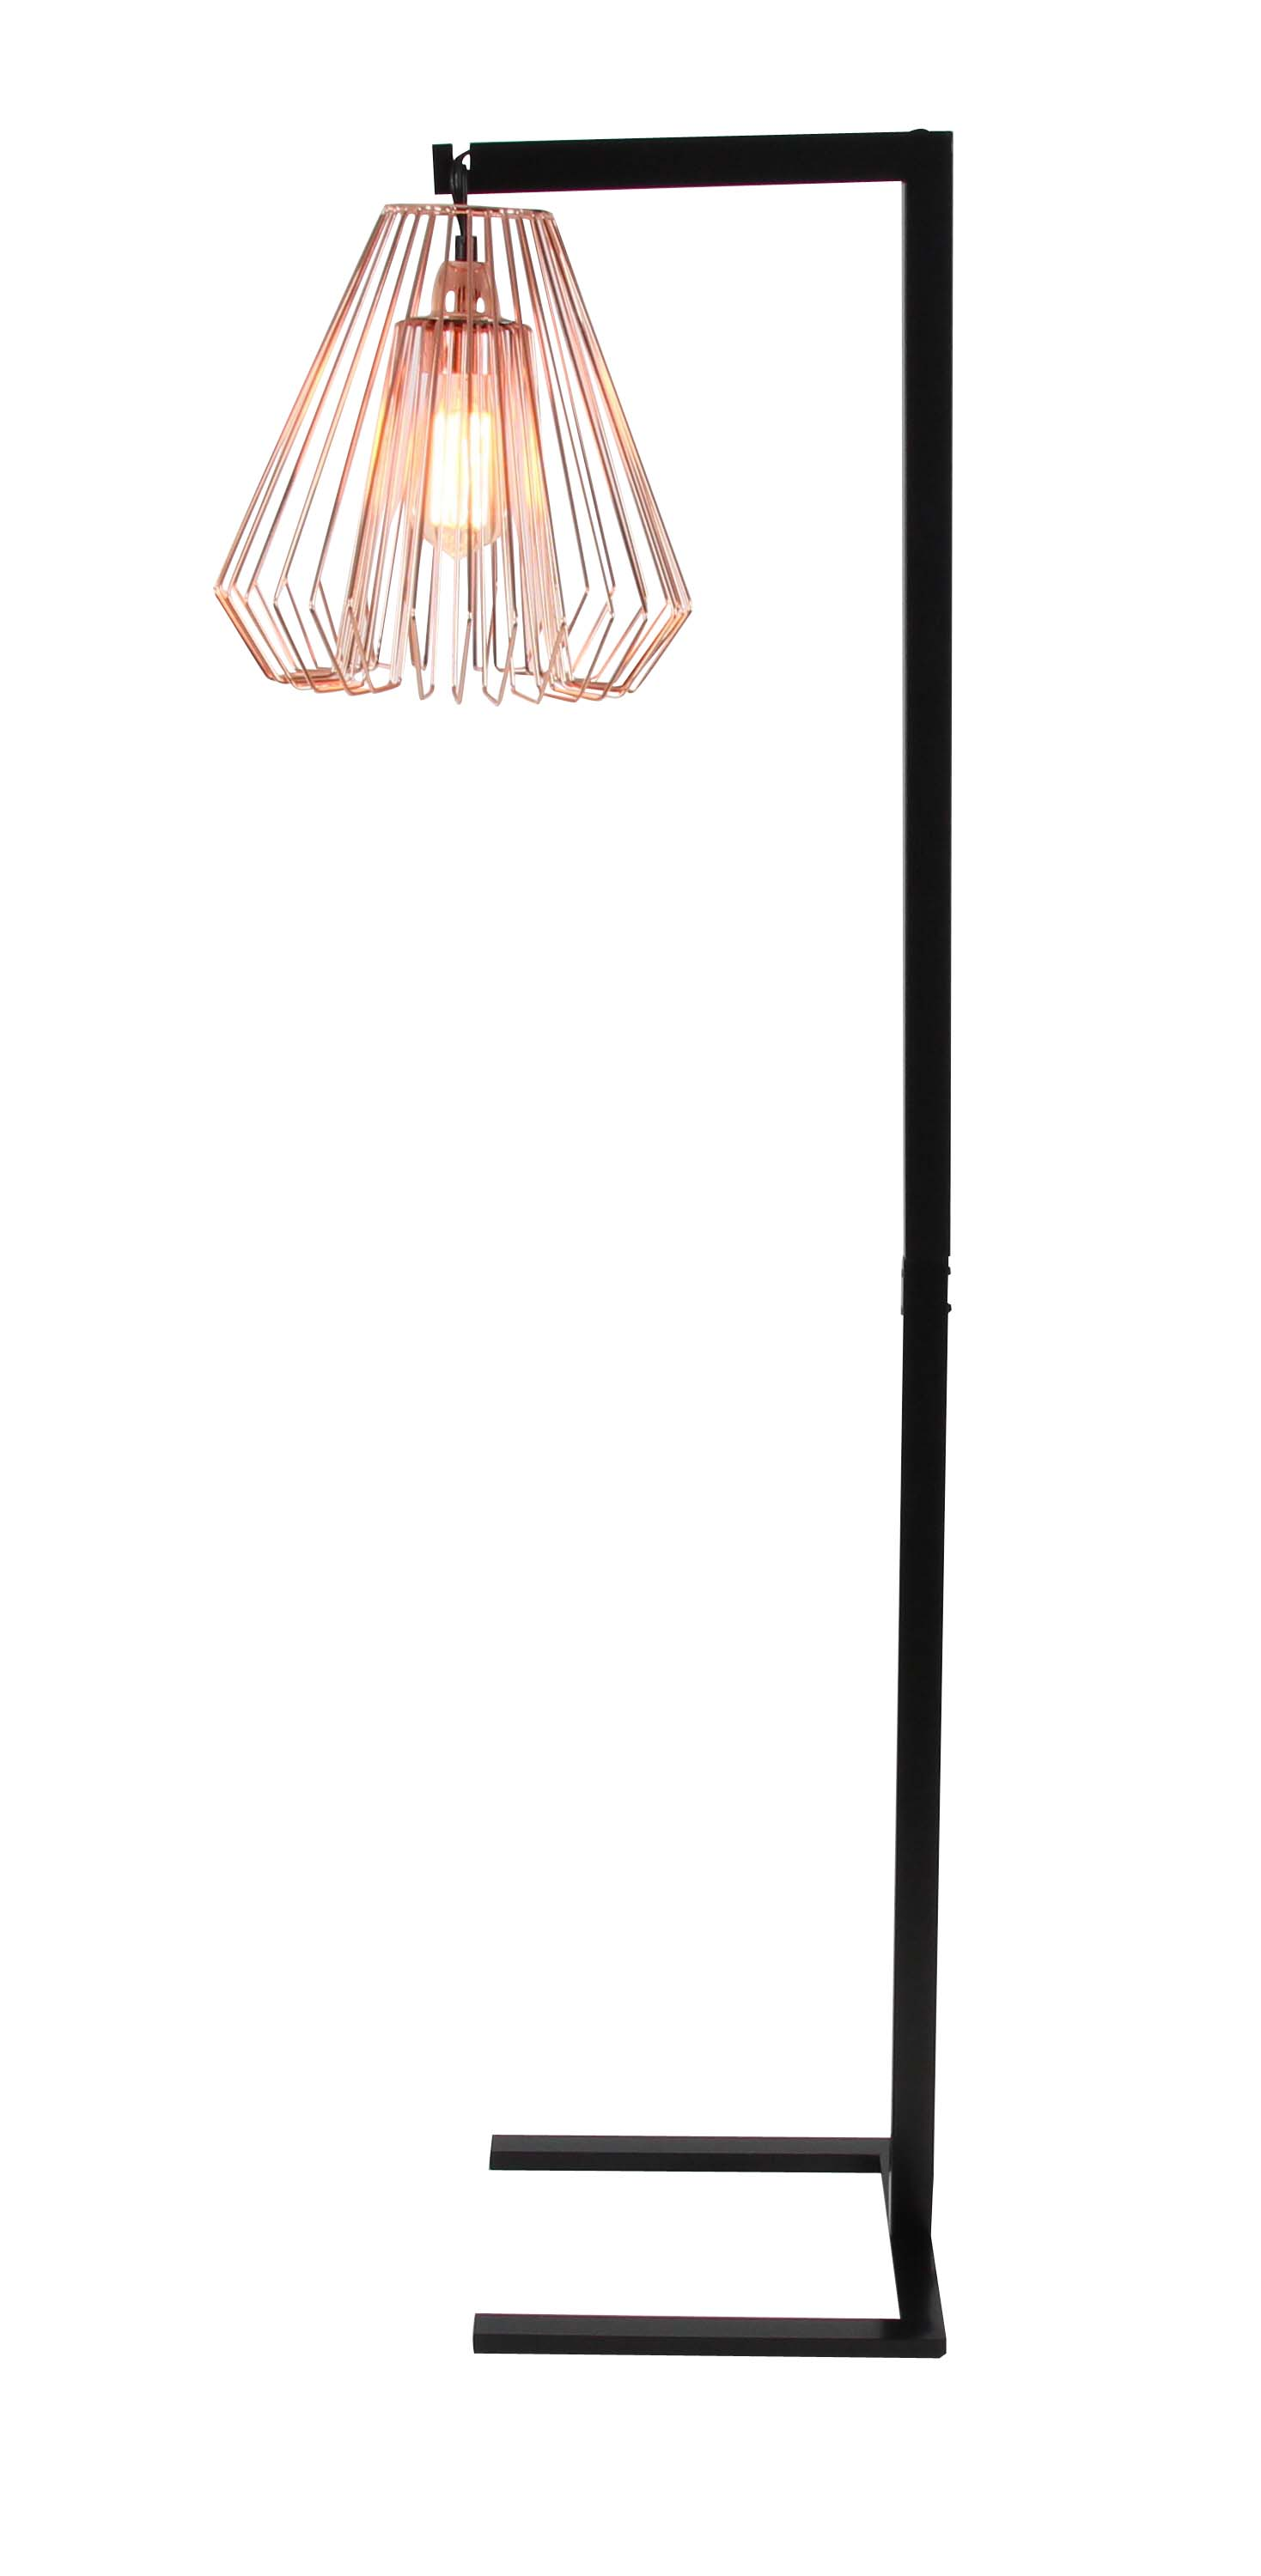 Remarkable Decmode Contemporary 55 Inch Wire Grid Metal Floor Lamp Black Wiring Digital Resources Talizslowmaporg